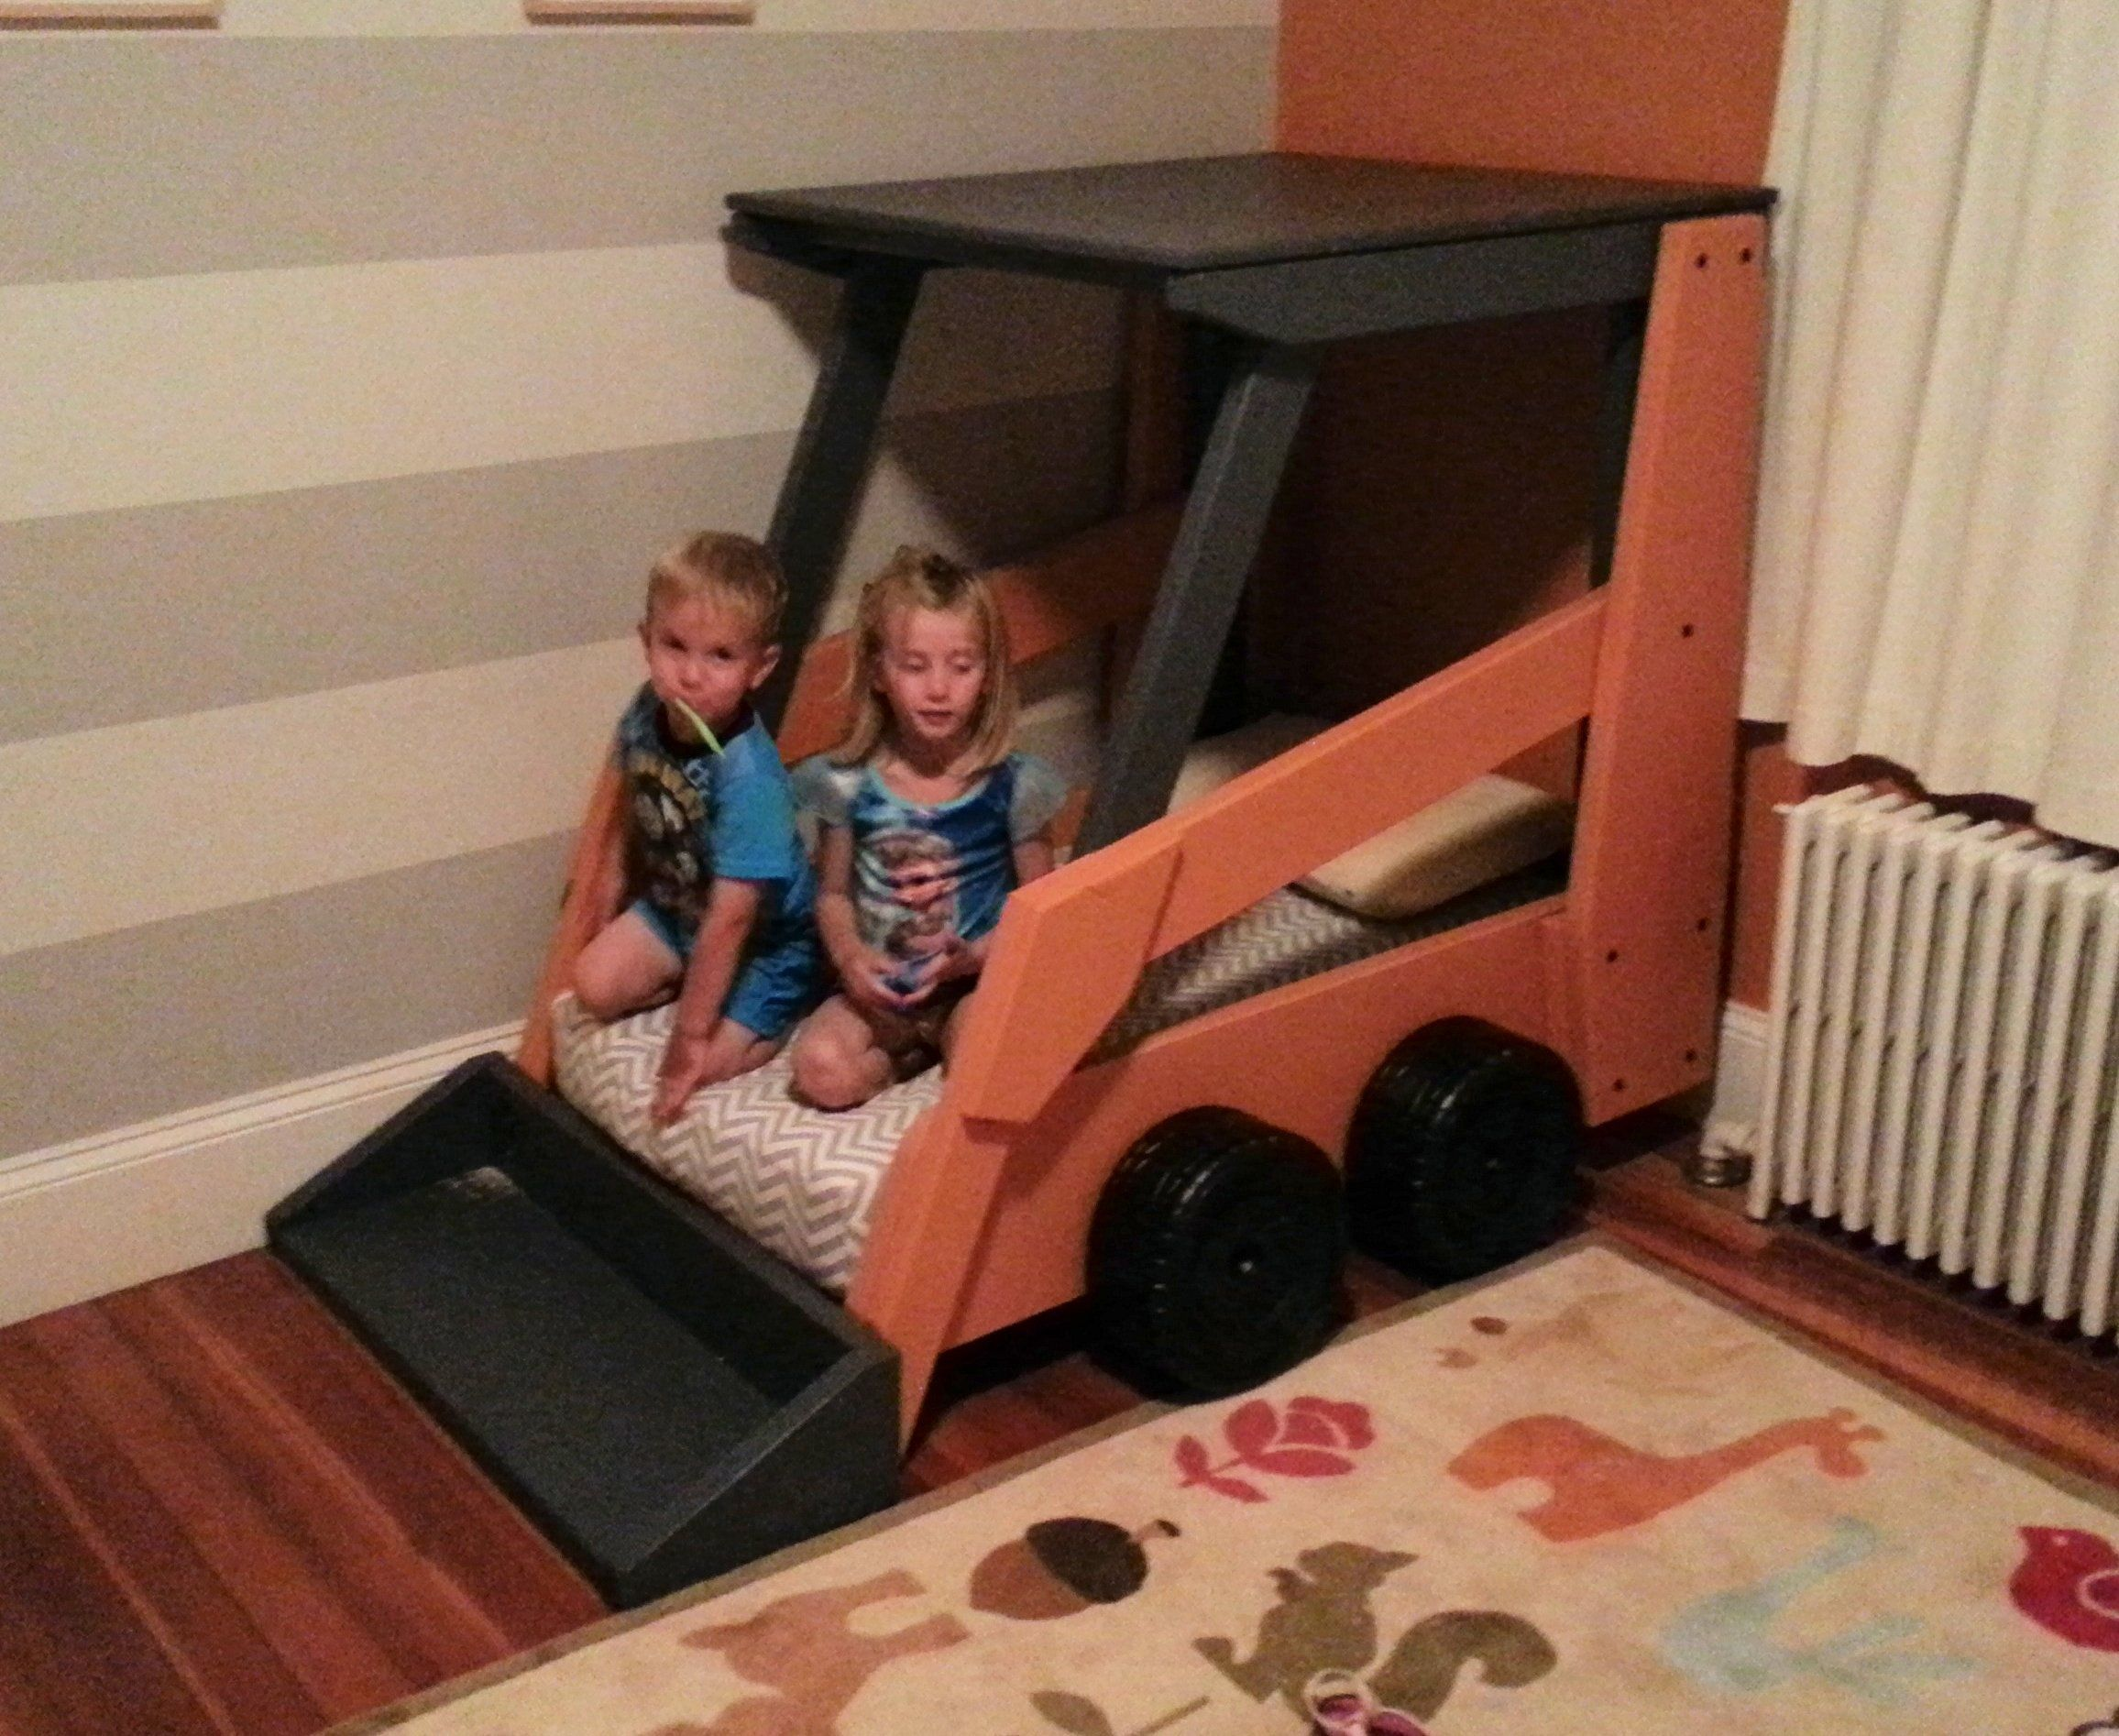 Handmade Wooden Toddler Bed Designed To Look Like A Case Skid Steer